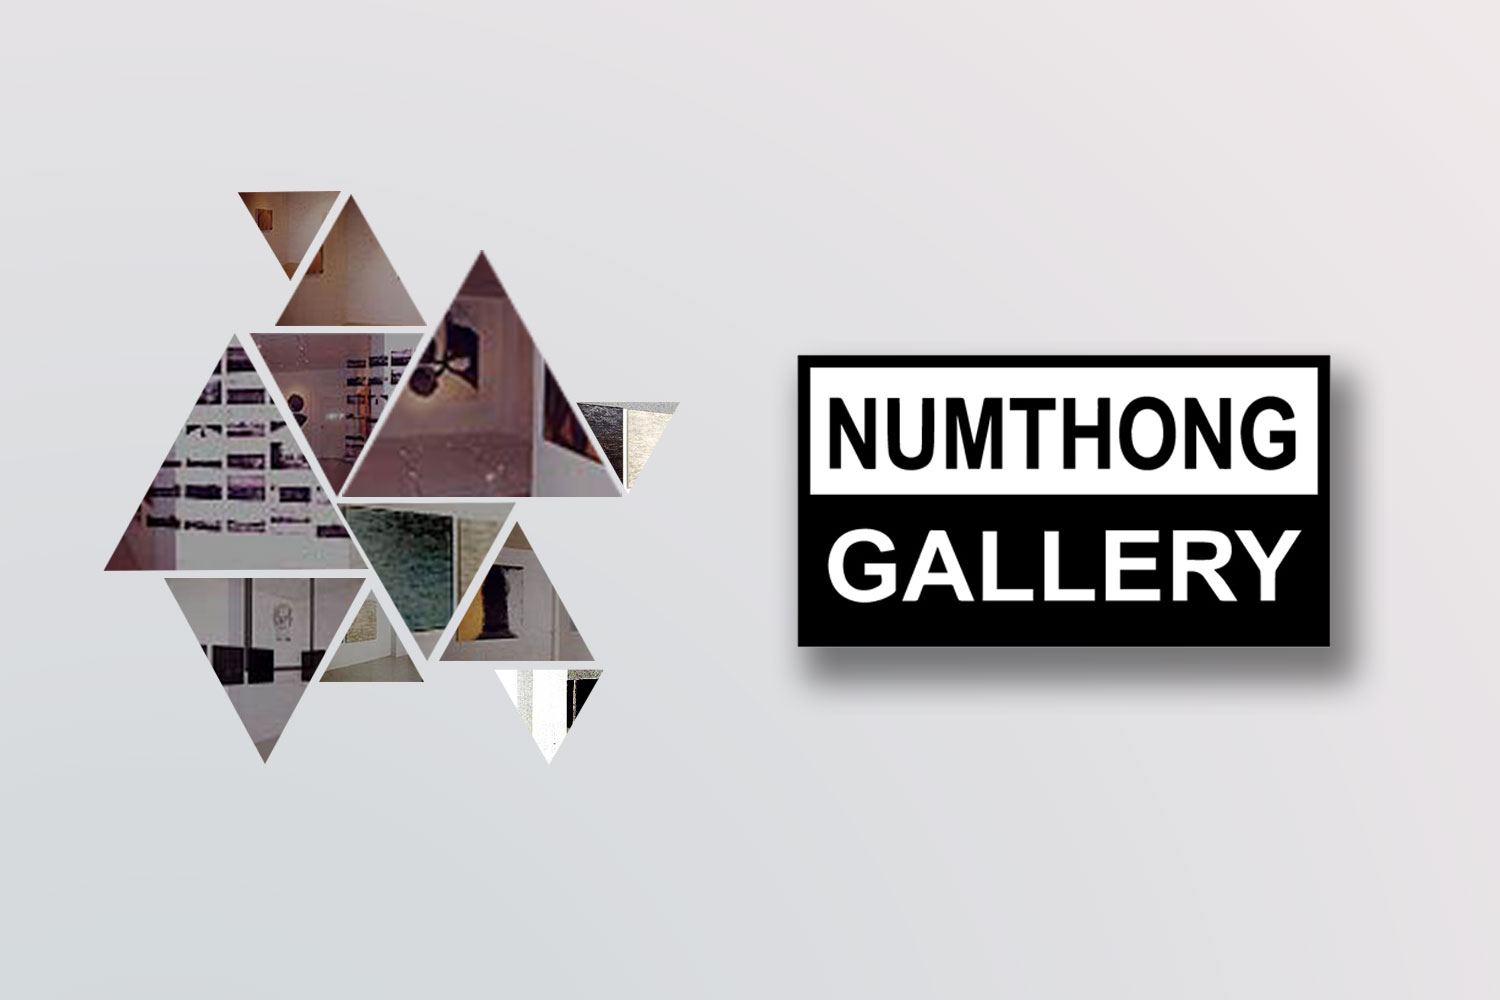 Gallery : Numthong Gallery